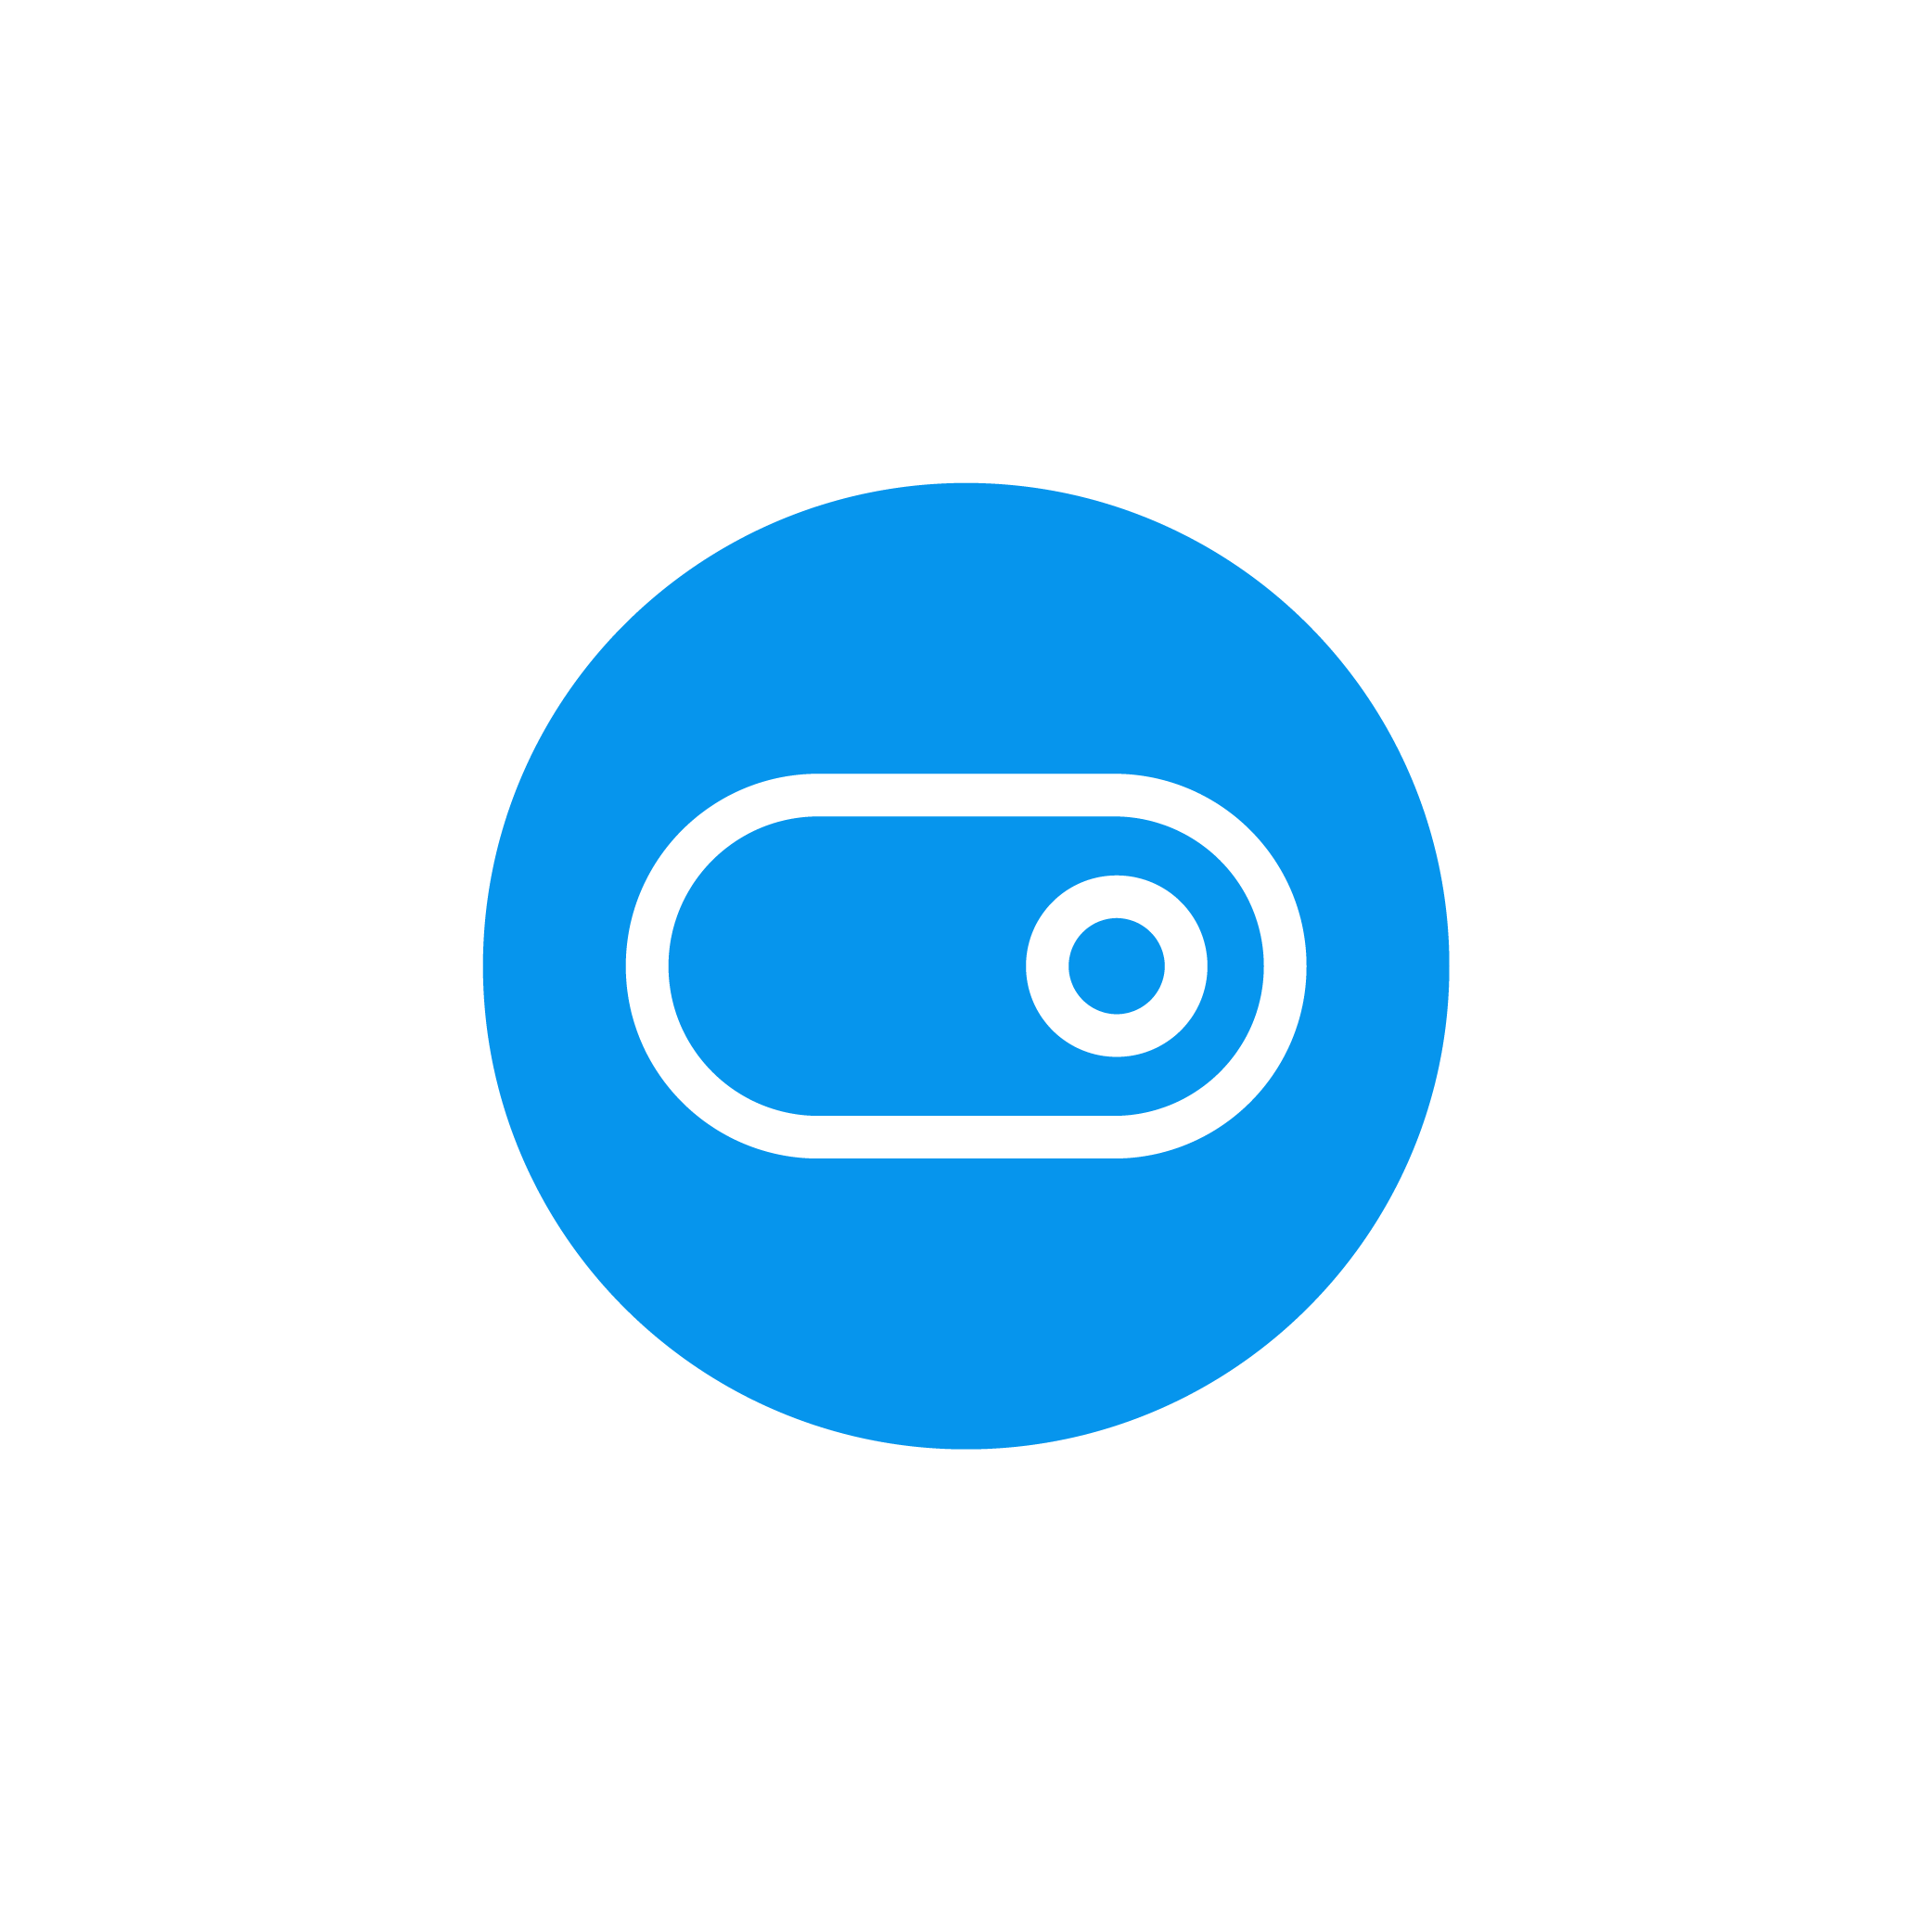 PBS_ODiN-ICONS-Provisioning SOLO-01.png